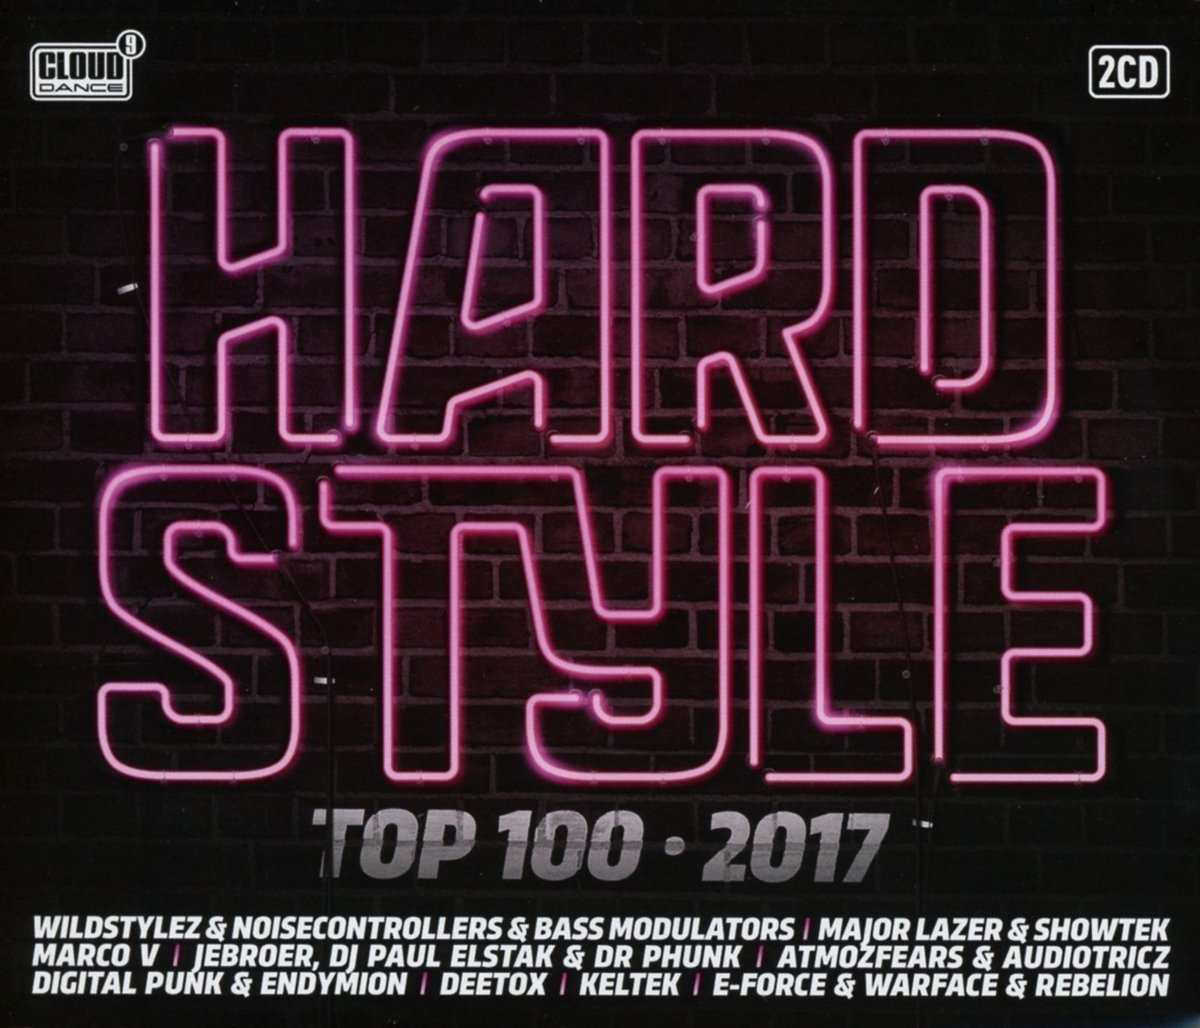 VA - Hardstyle Top 100 2017 - (CLDM2017008) - 2CD - FLAC - 2017 - WRE Download